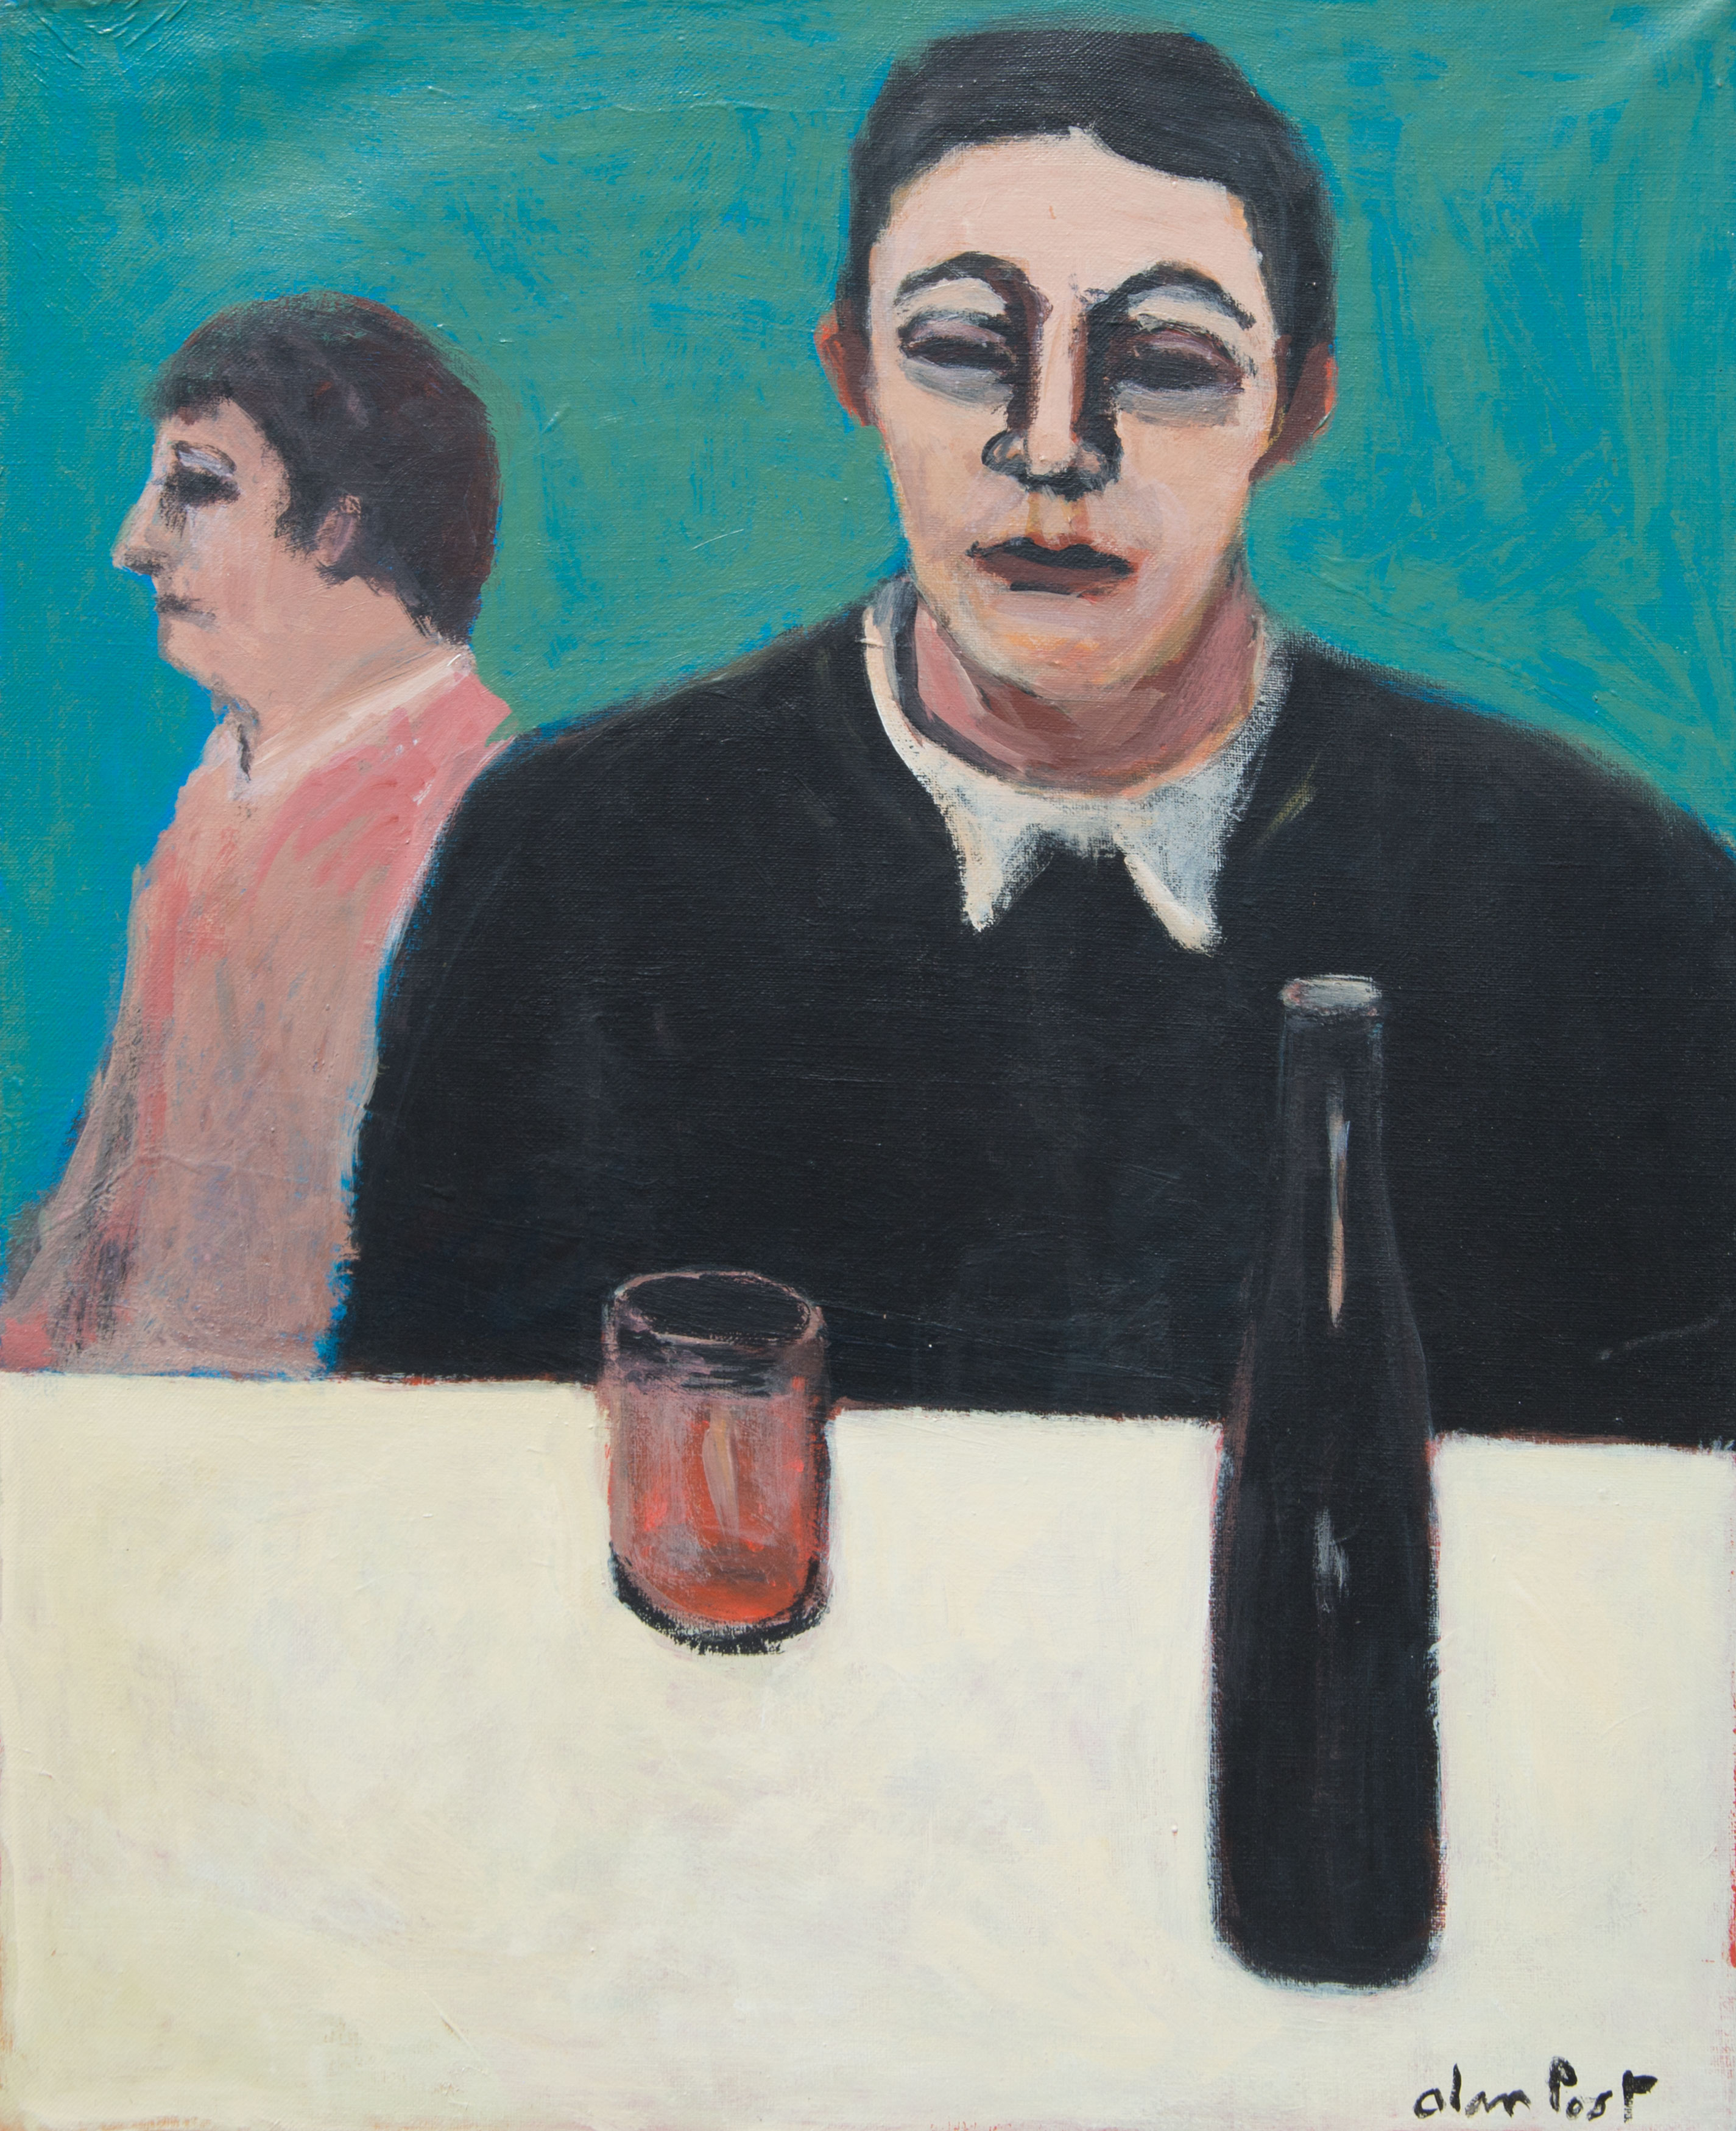 Alan Post, Man, Woman, Bottle Of Wine, 1970